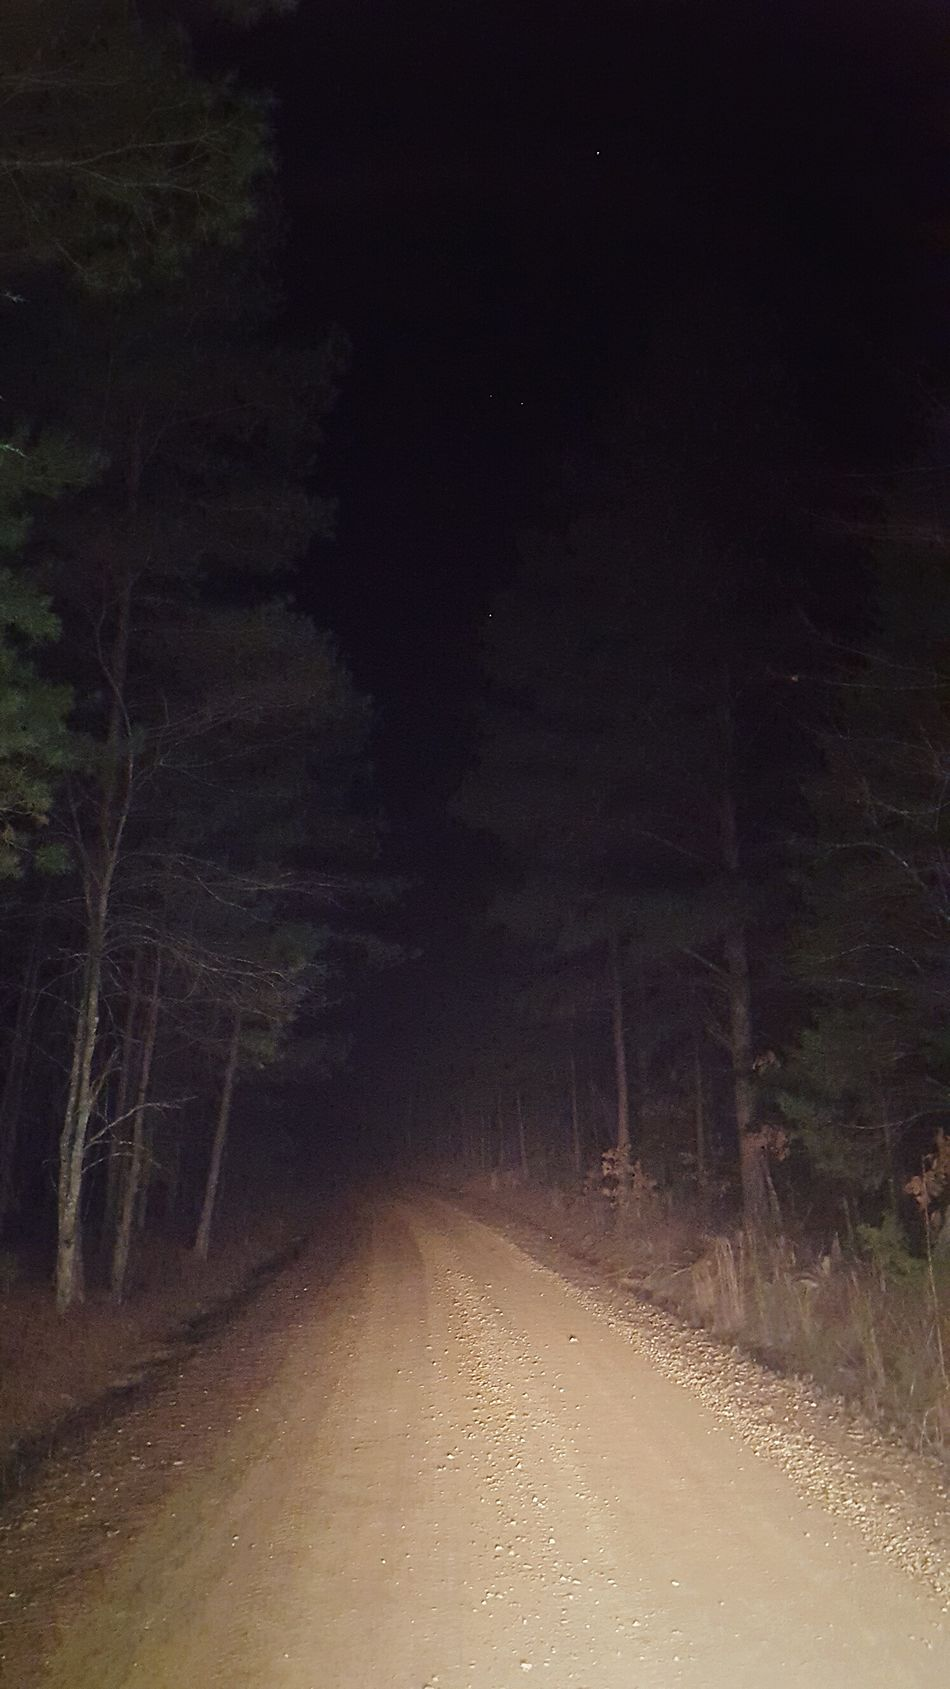 Backgrounds Outdoors Road To Nowhere Dirt Road Dirt Road Photography Backroads Nightshot Trees Nature Forrest Road Stars At Night Starry Night Musical Evening Gravel Road Adventures Southernliving